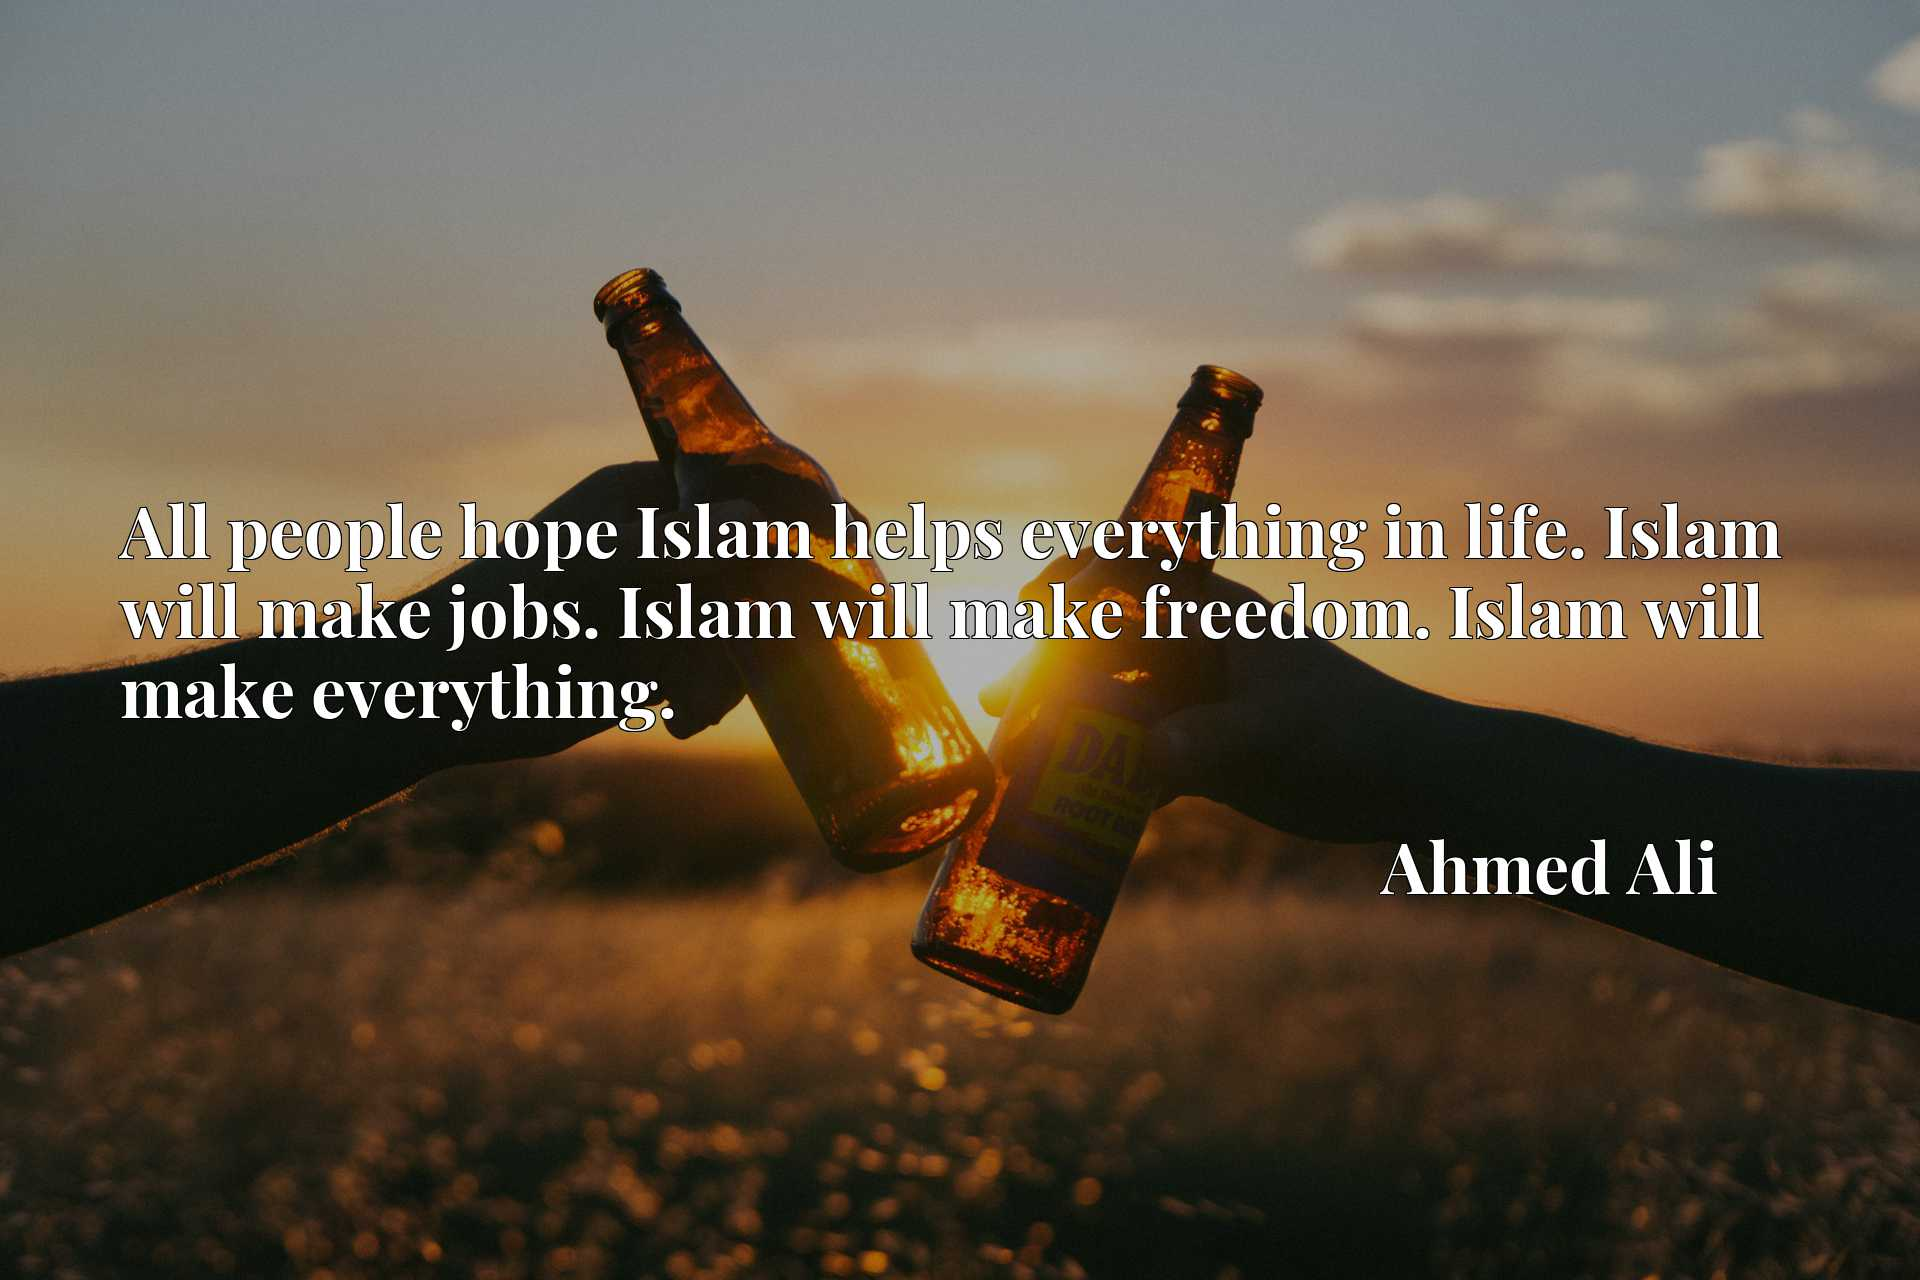 All people hope Islam helps everything in life. Islam will make jobs. Islam will make freedom. Islam will make everything.